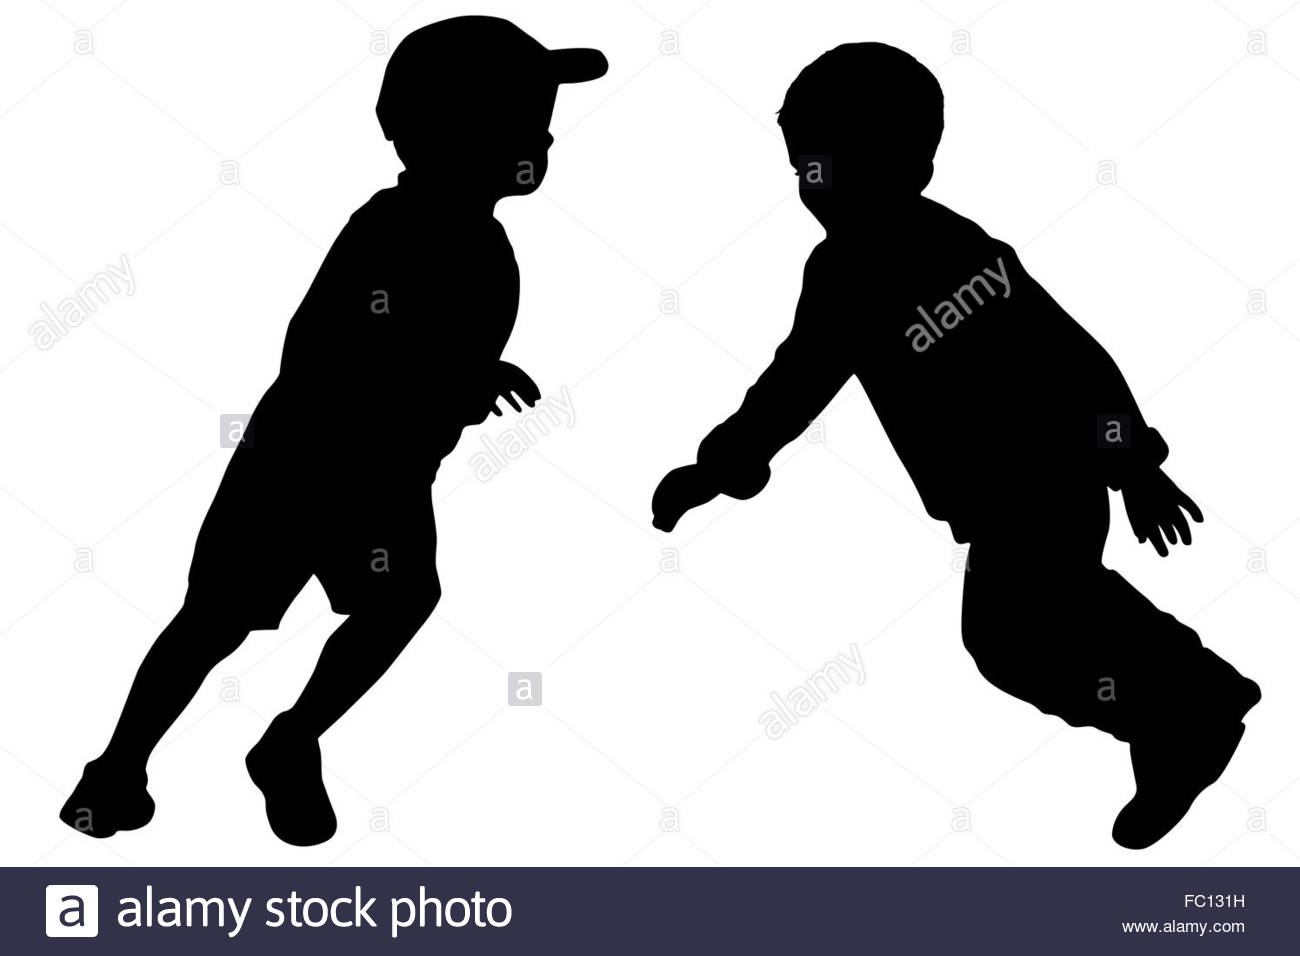 1300x956 Silhouettes Of Two Little Boys Stock Photo 93452061